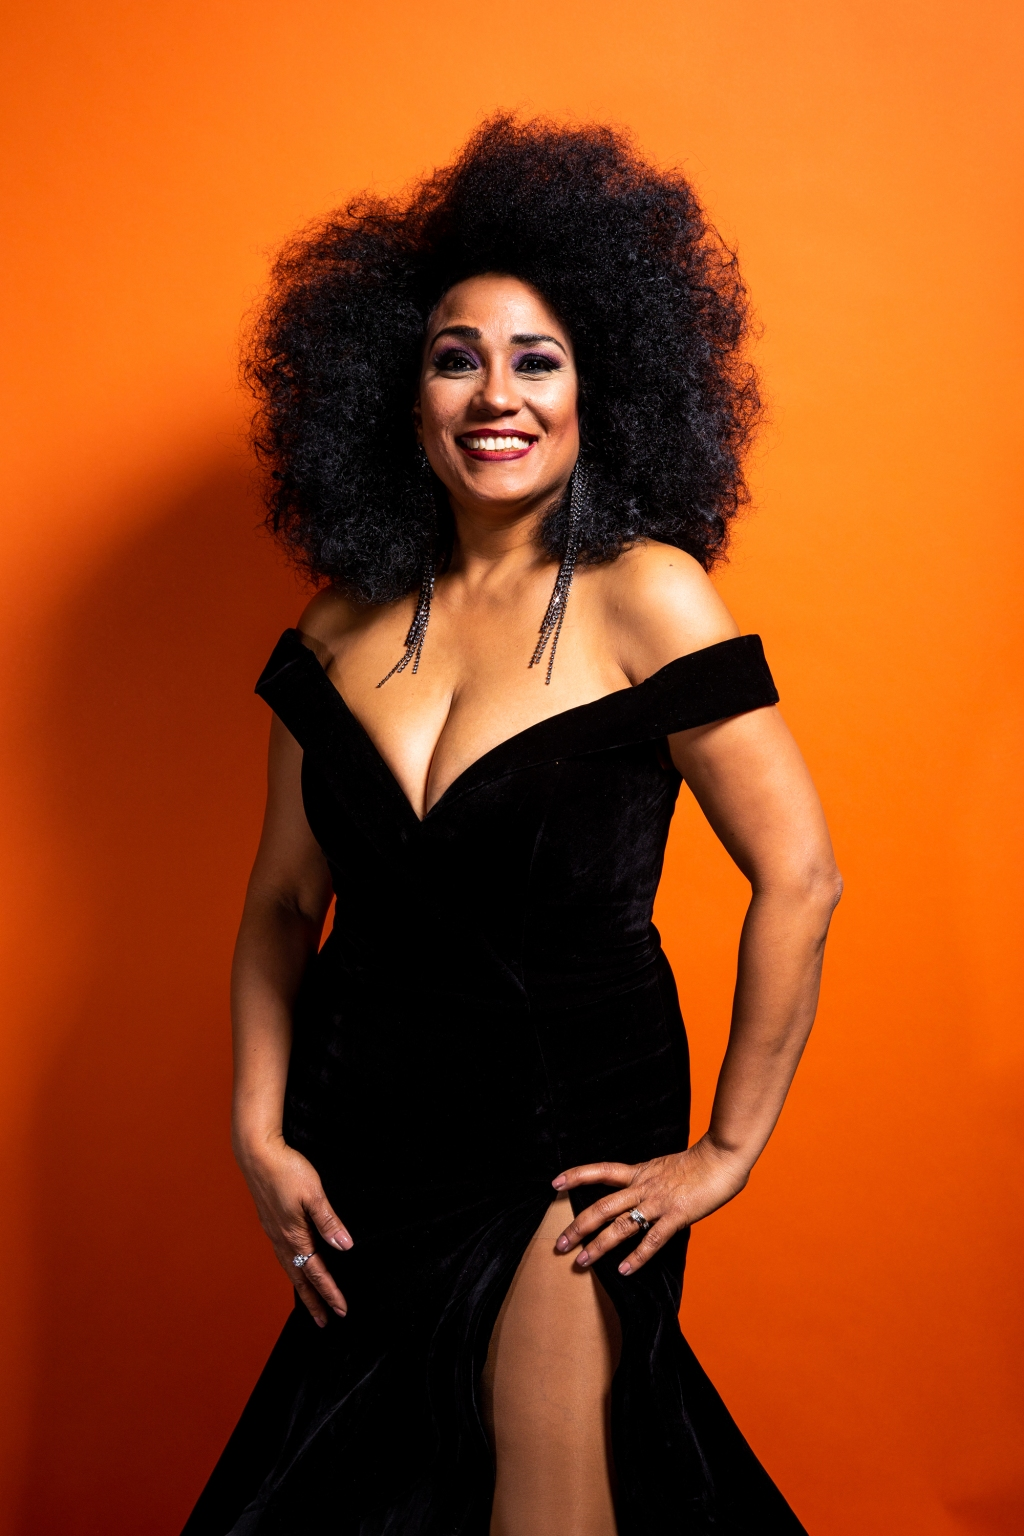 Aymee Nuviola poses for a portrait backstage at the 19th annual Latin Grammy Awards at the MGM Garden Arena on November 15, 2018 in Las Vegas, NV.